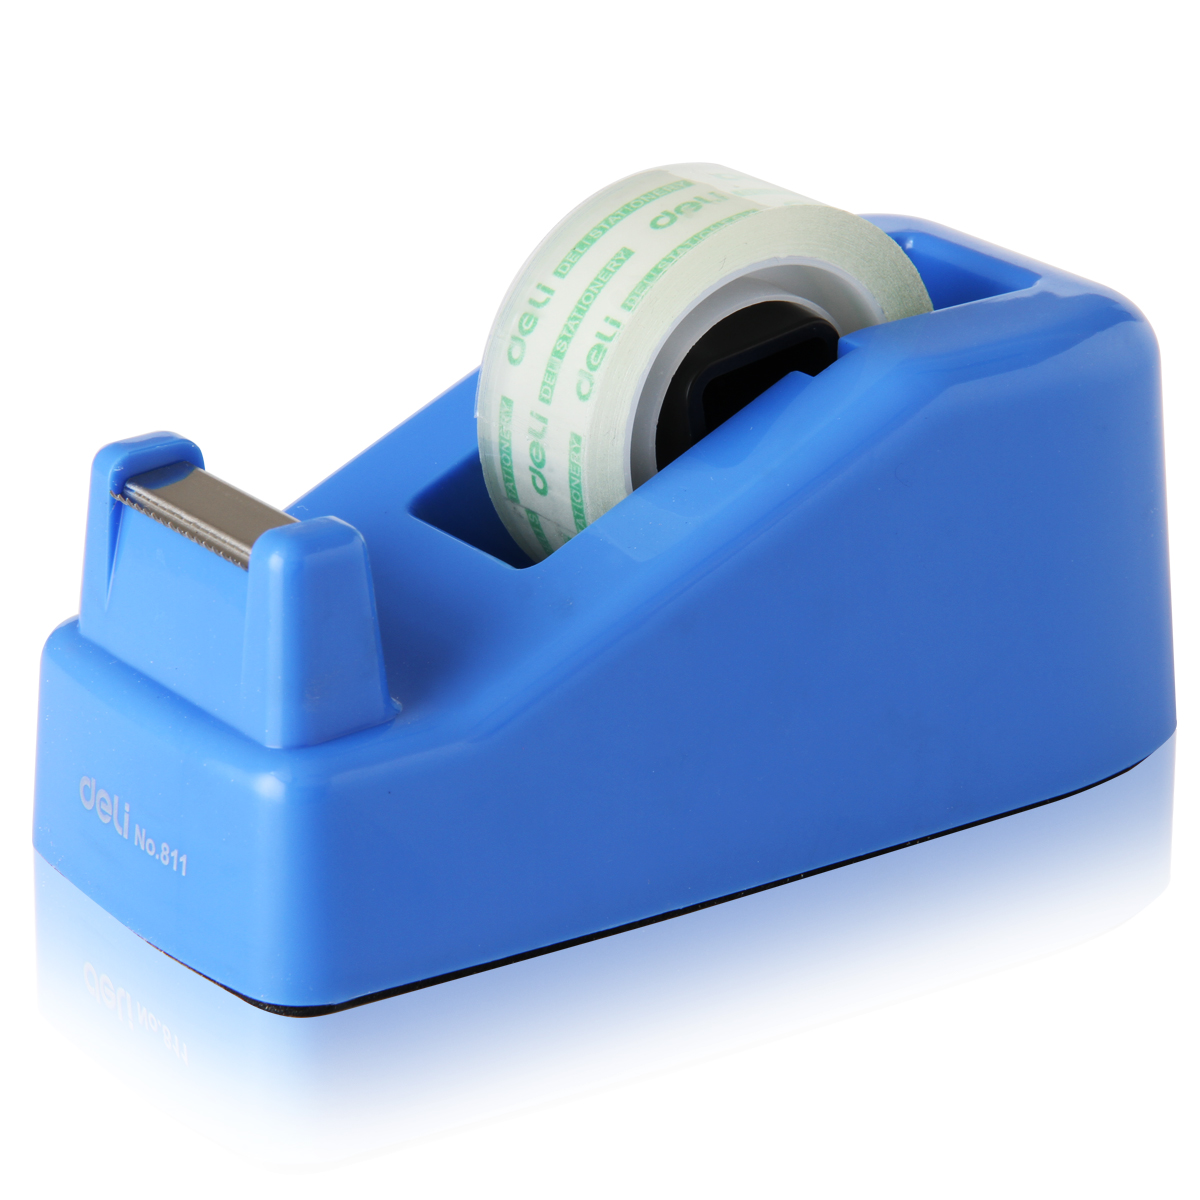 1 pc tape dispenser small size for adhesive tape width less than 18mm easy to use deli 811